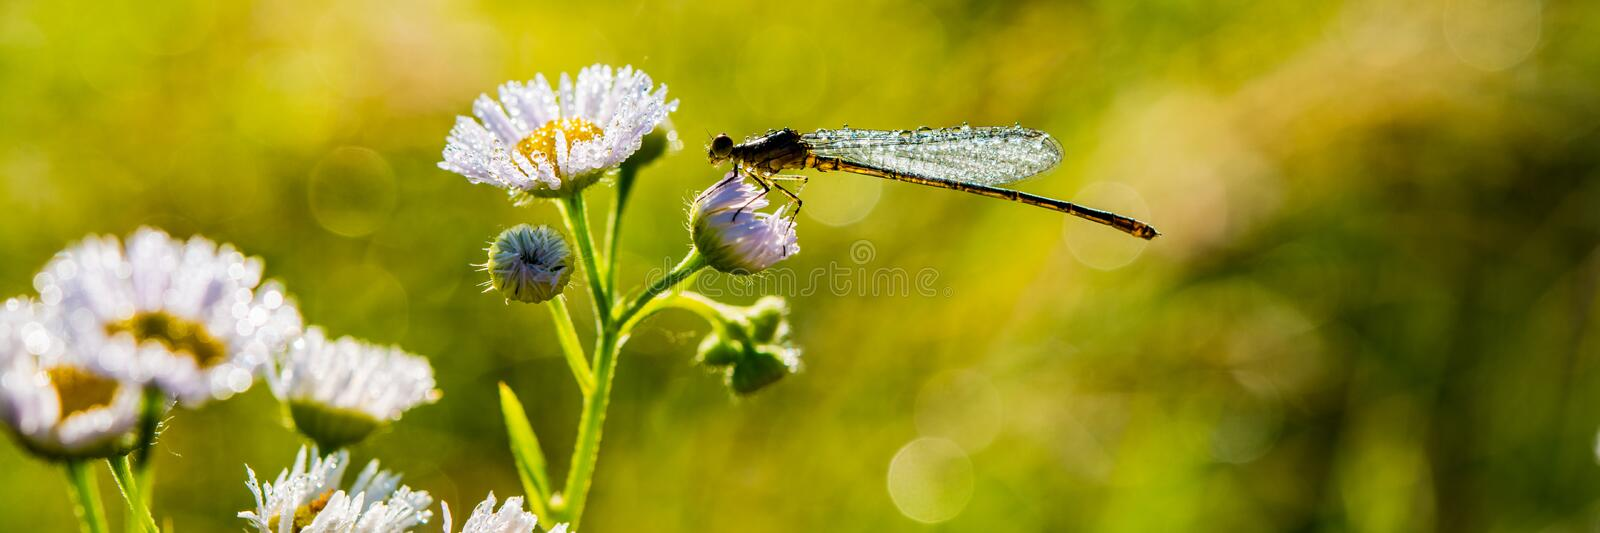 Dragonfly sits on a flower covered with drops of dew in a meadow. Banner for design royalty free stock photography